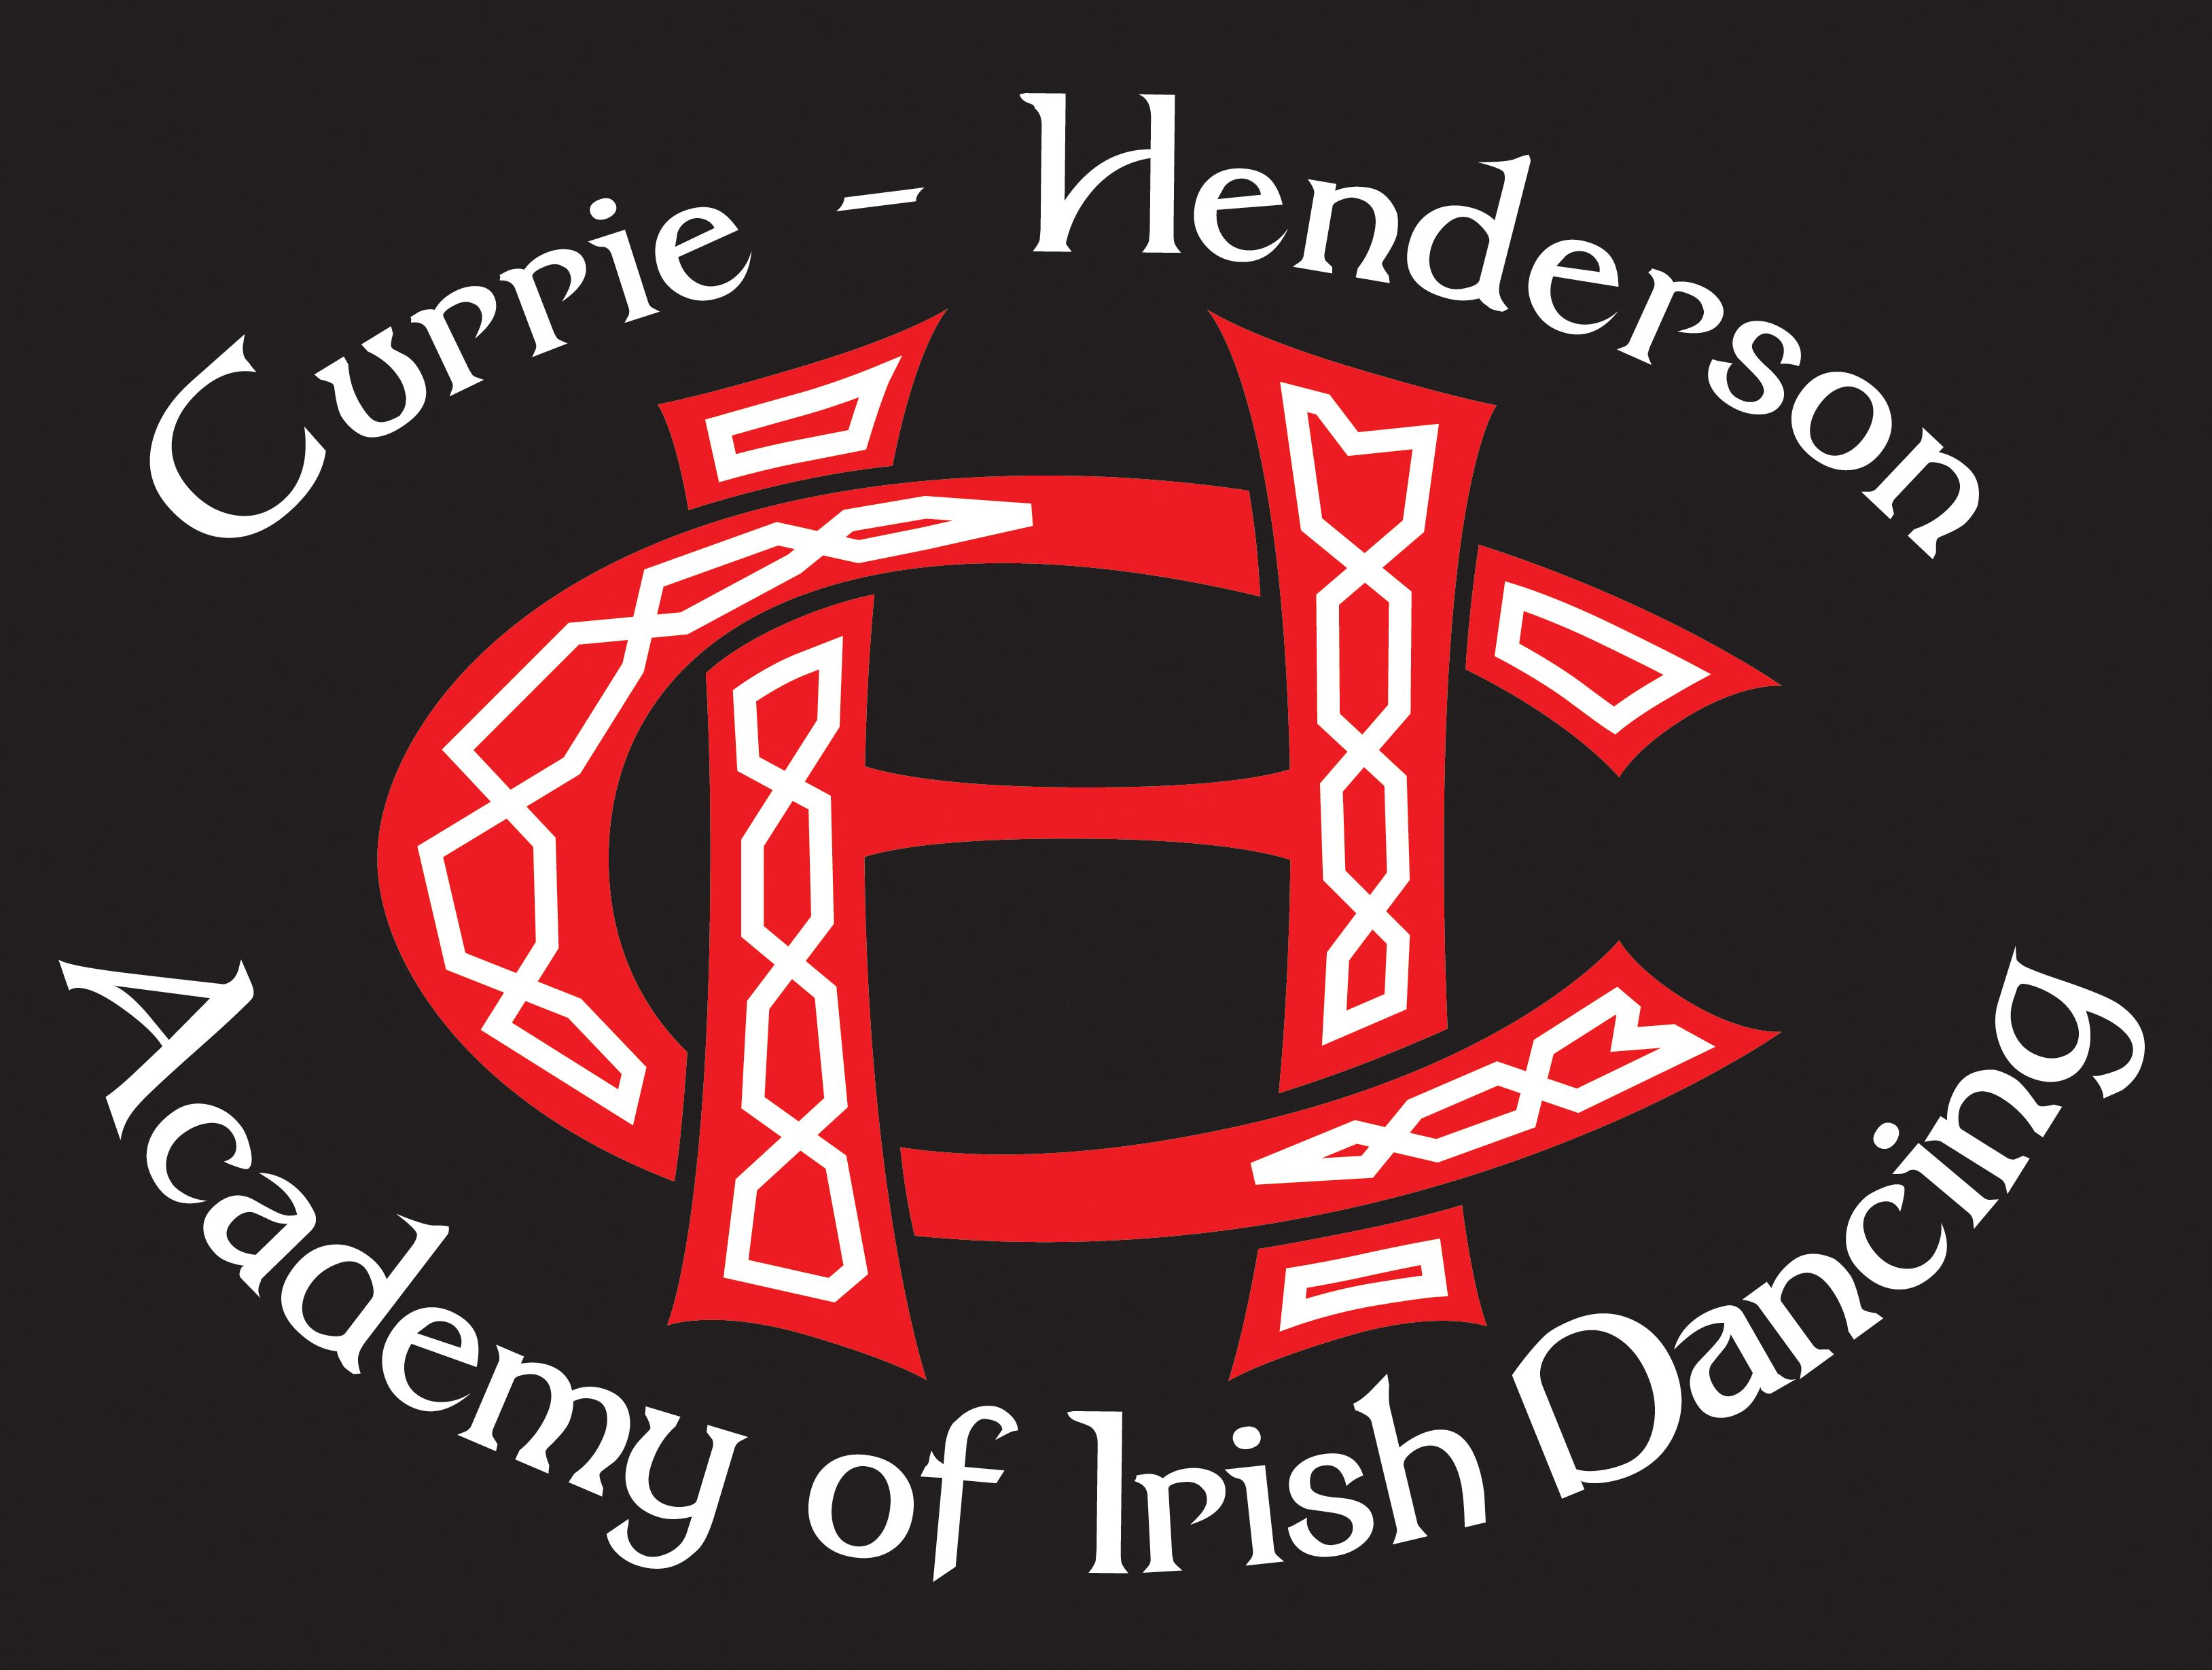 Currie-Henderson Academy of Irish Dancing